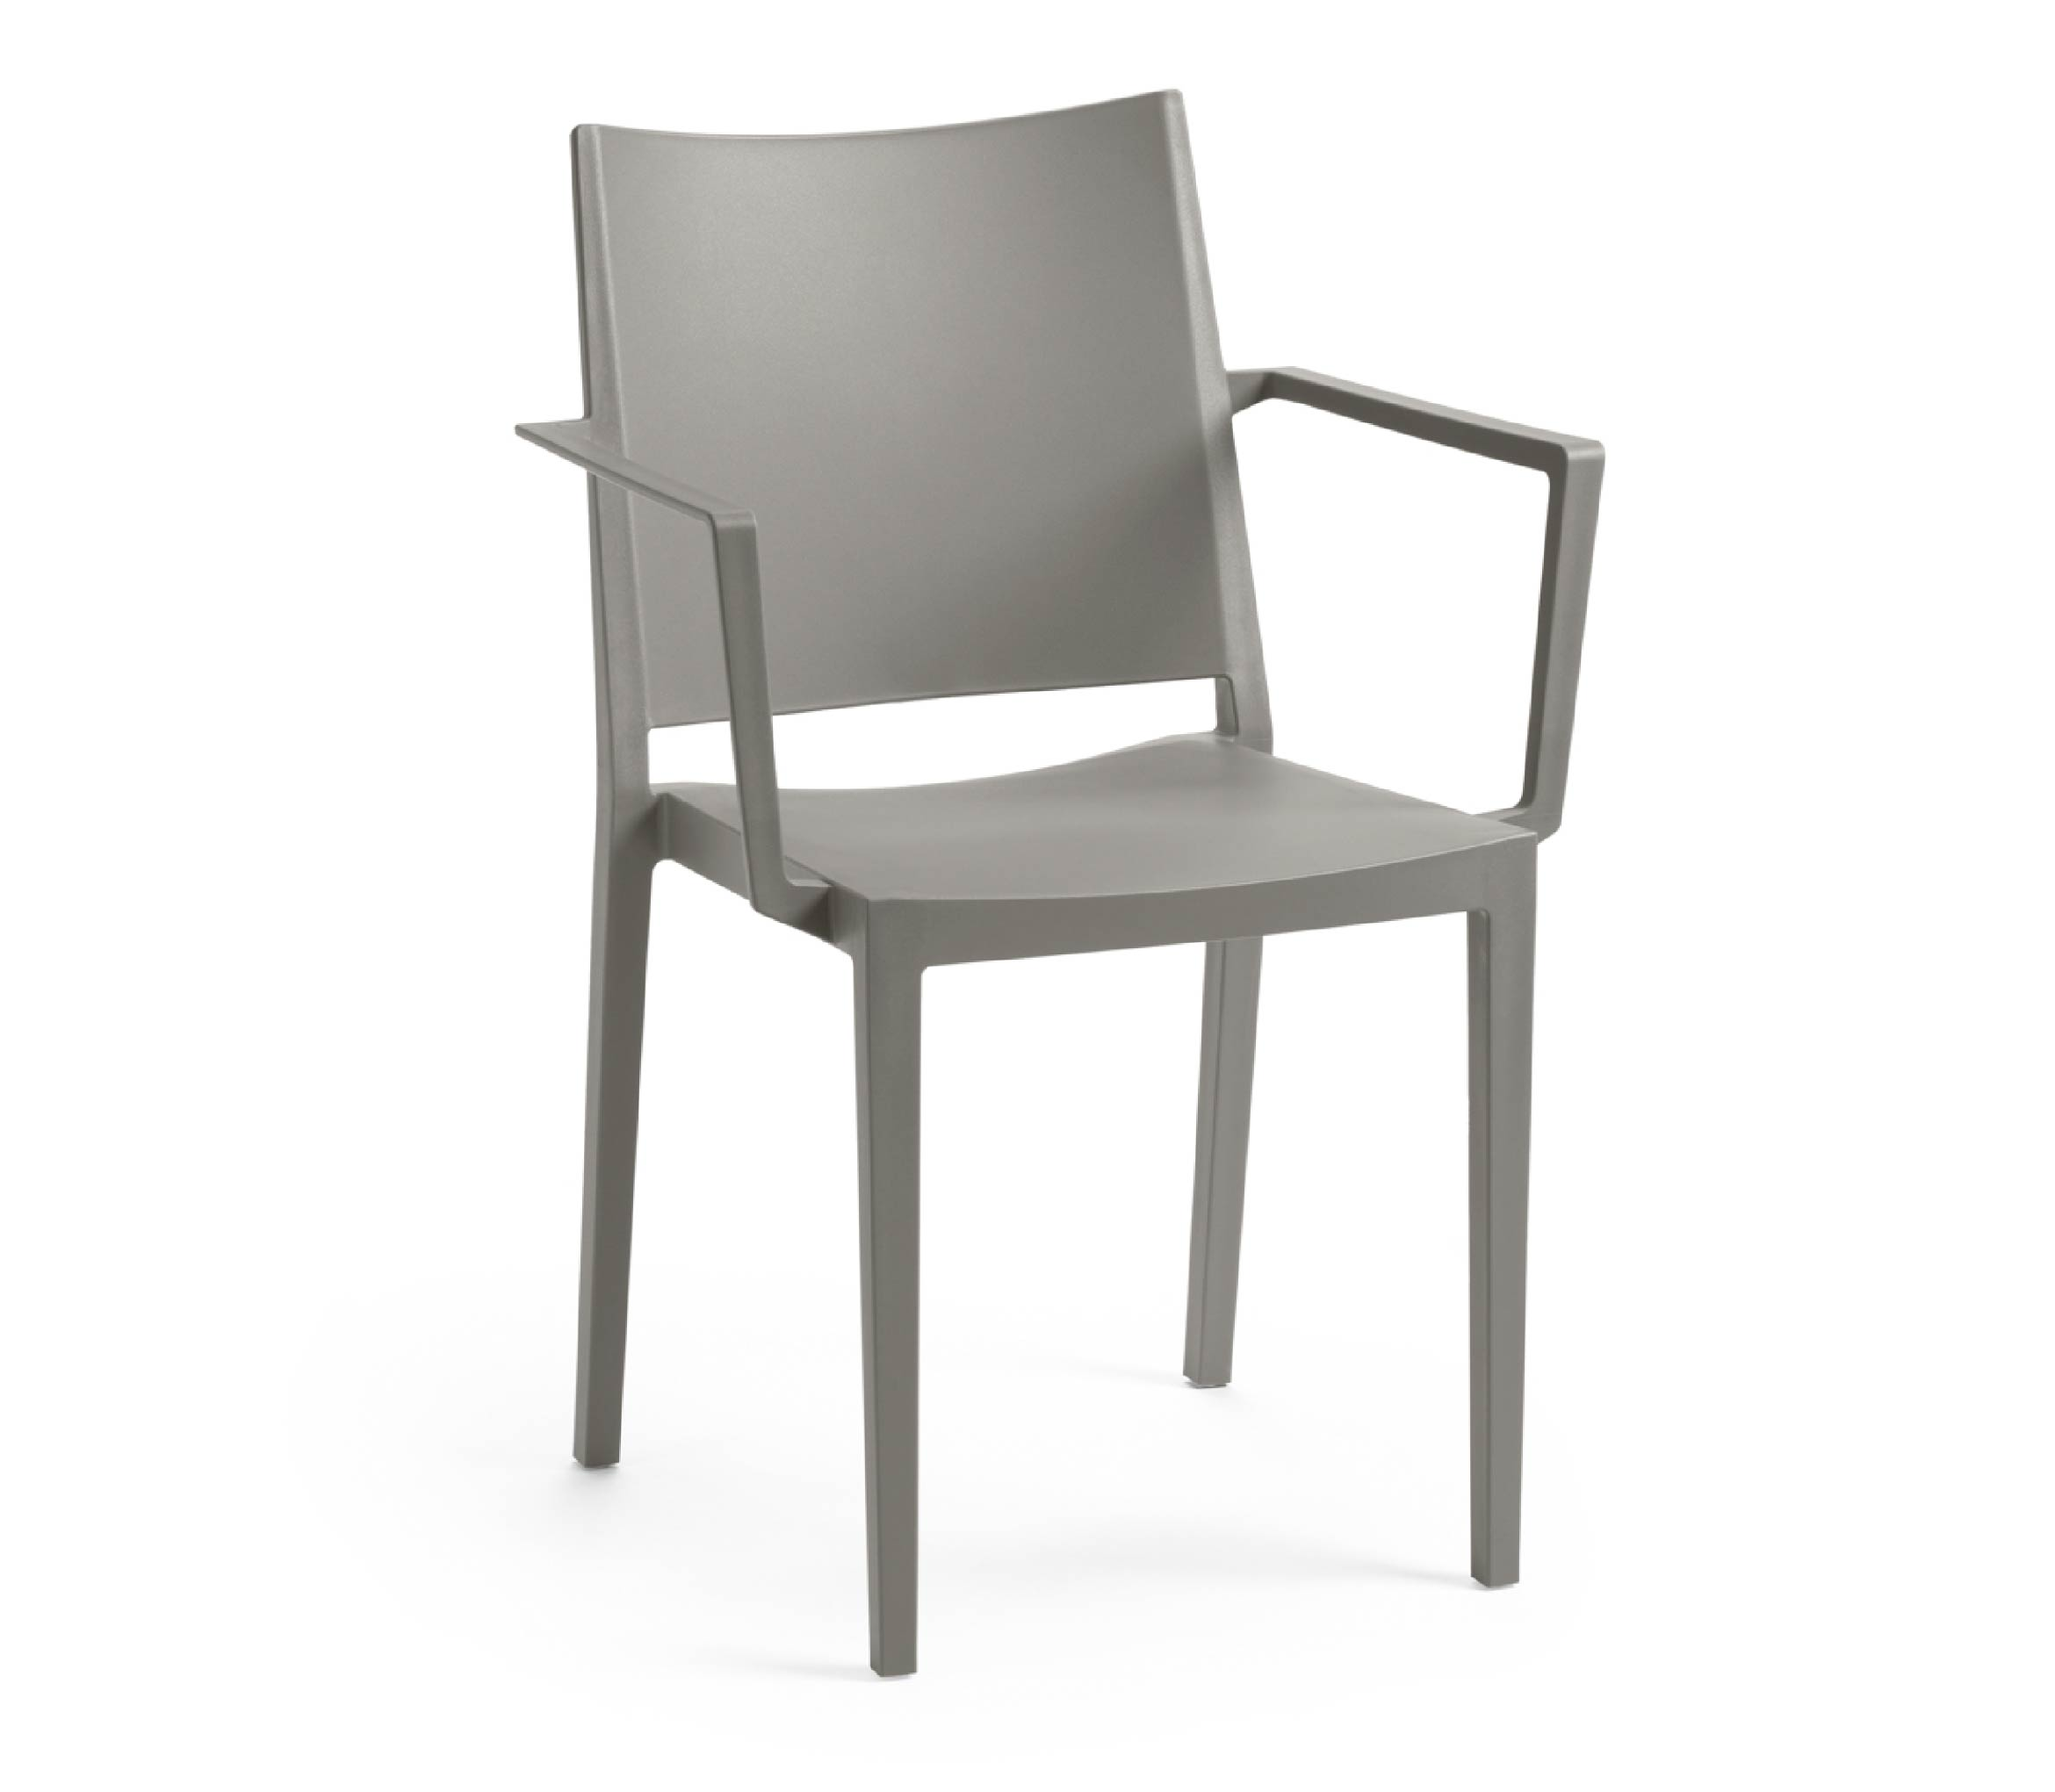 6 - TENSAI_FURNITURE_MOSK_ARMCHAIR_GREY_TAUPE__COLOR_PLASTIC_white_background__954_001